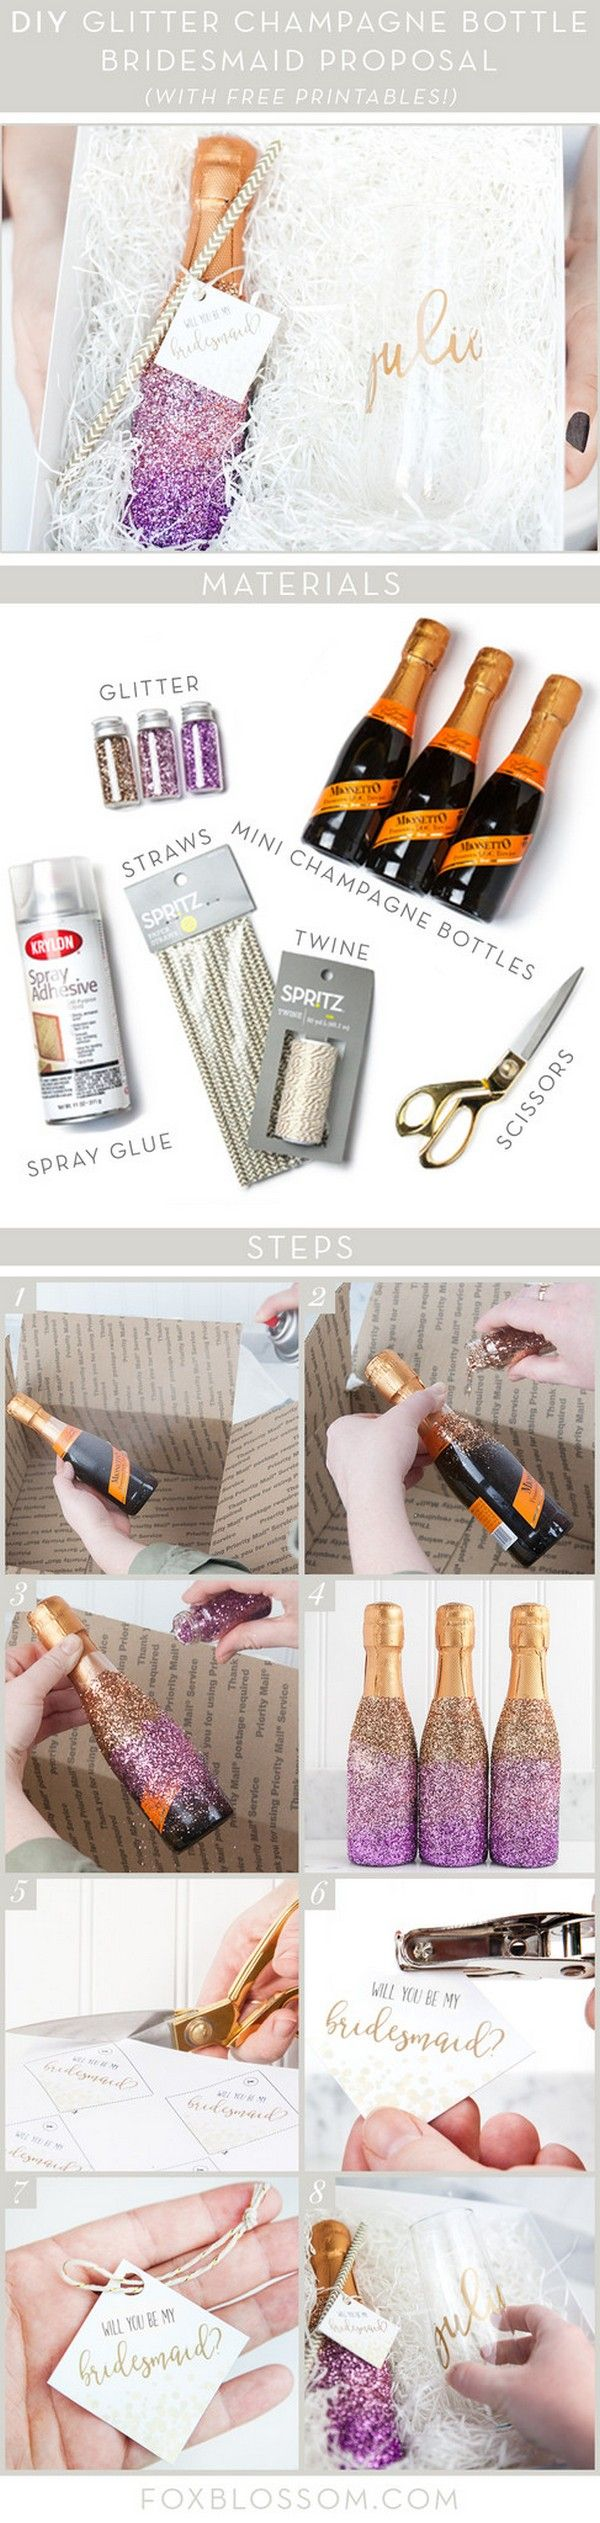 diy glitter champagne bottle bridesmaid proposal gift ideas